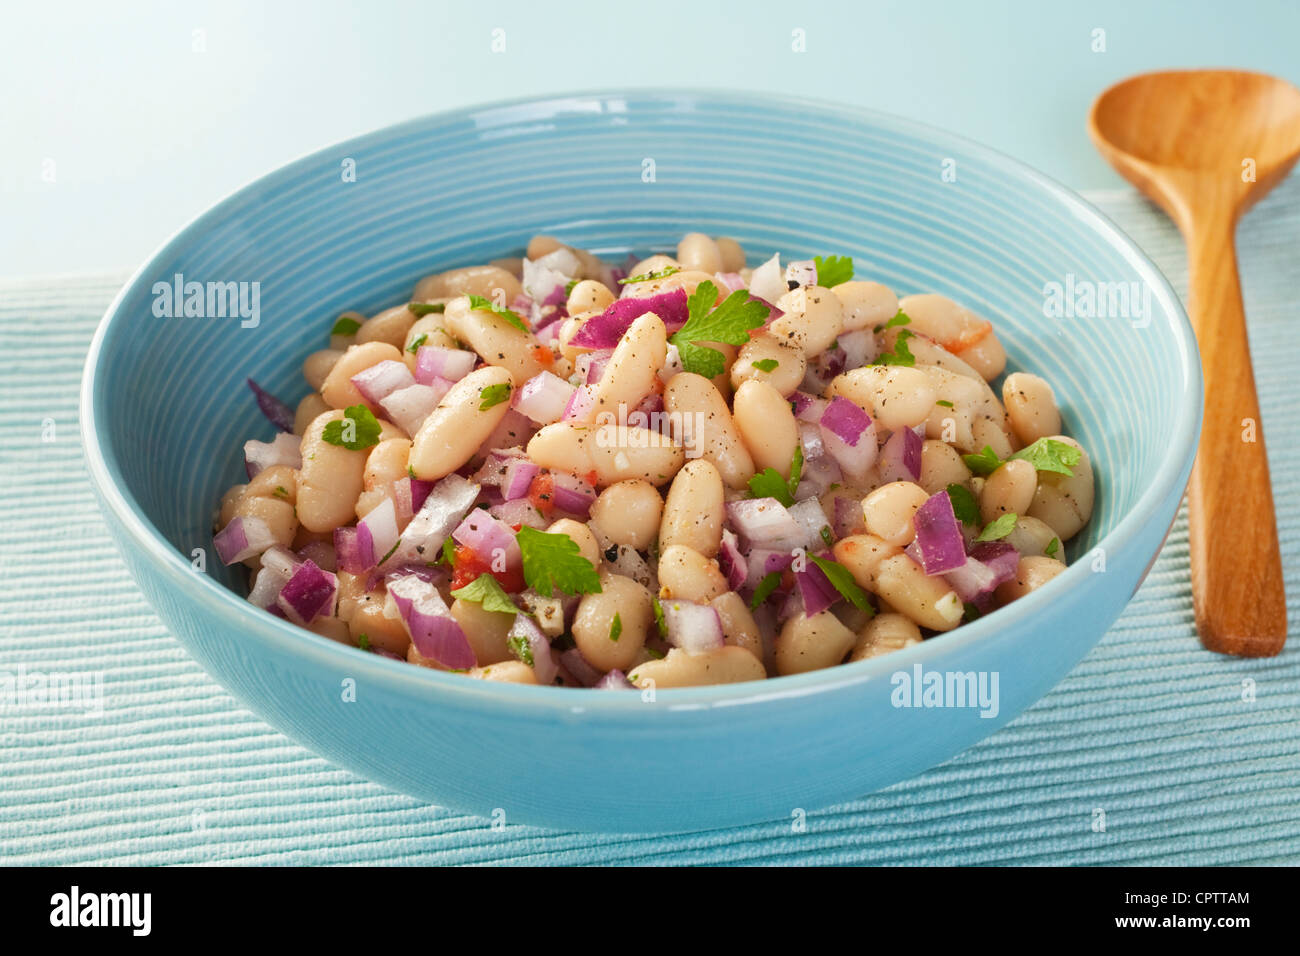 Italian cannelini bean salad of beans in lemon vinaigrette with red onion, rosemary, parsley and garlic. - Stock Image